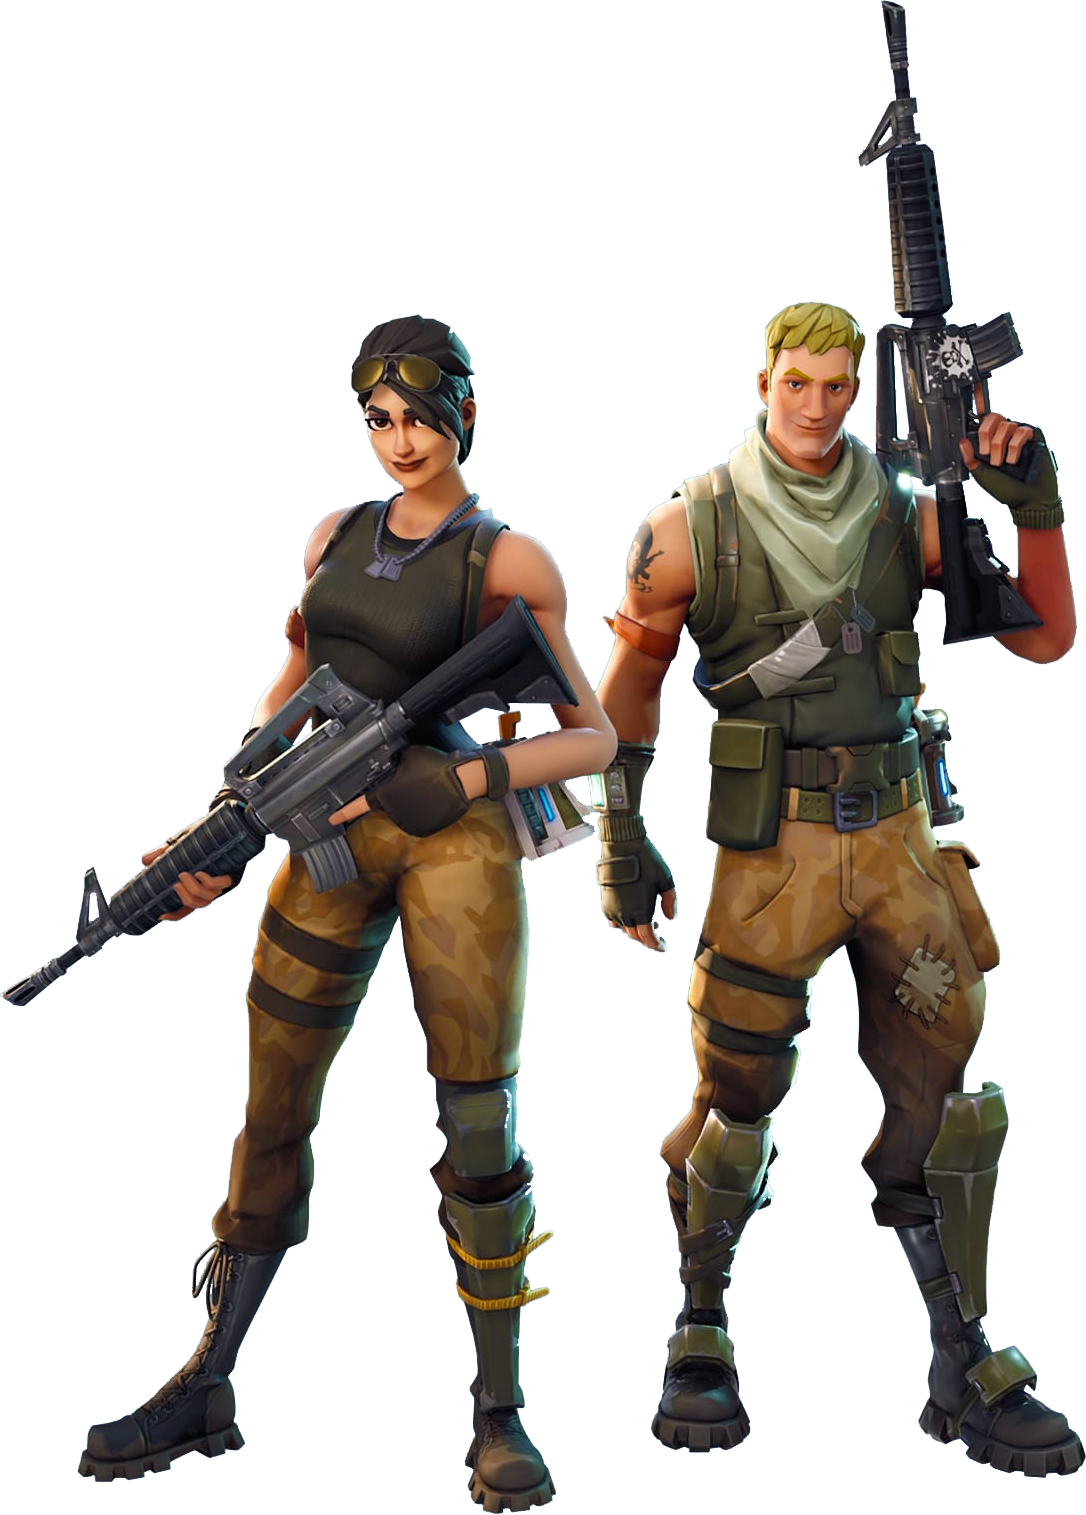 Army Soldier Royale Game Fortnite Battle PNG Image